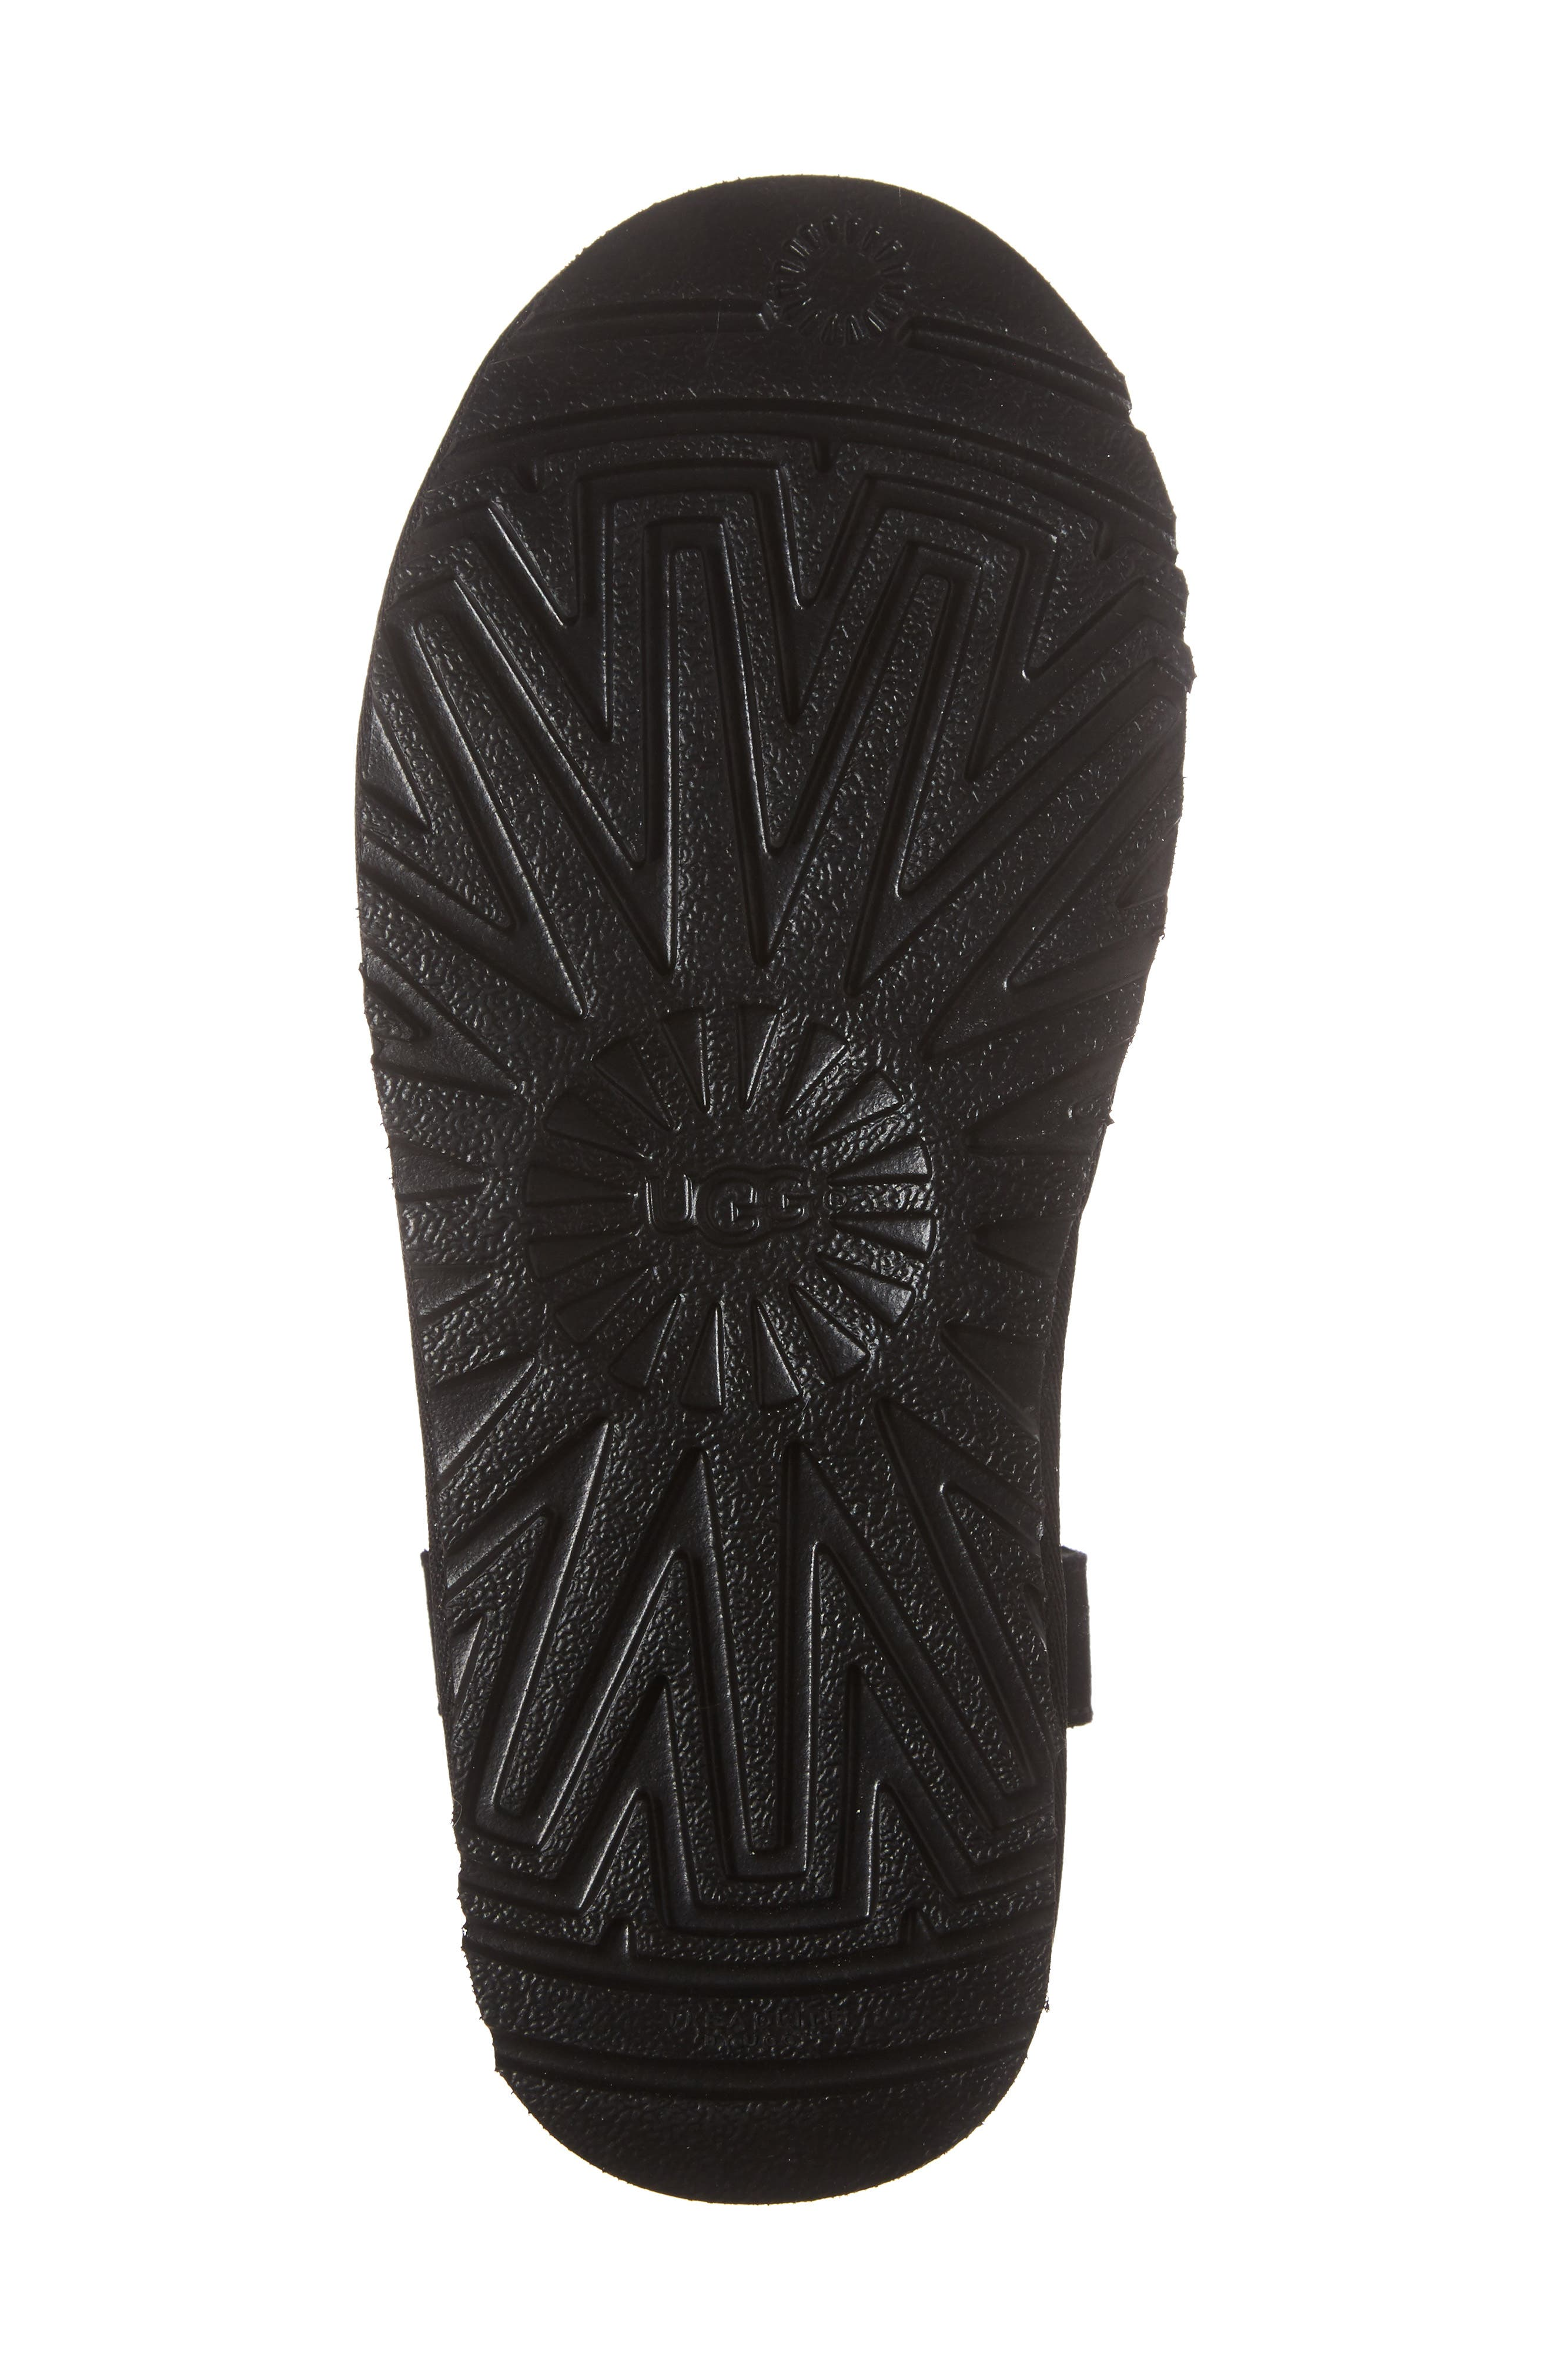 Saela Knit Cuff Boot,                             Alternate thumbnail 6, color,                             Black Suede